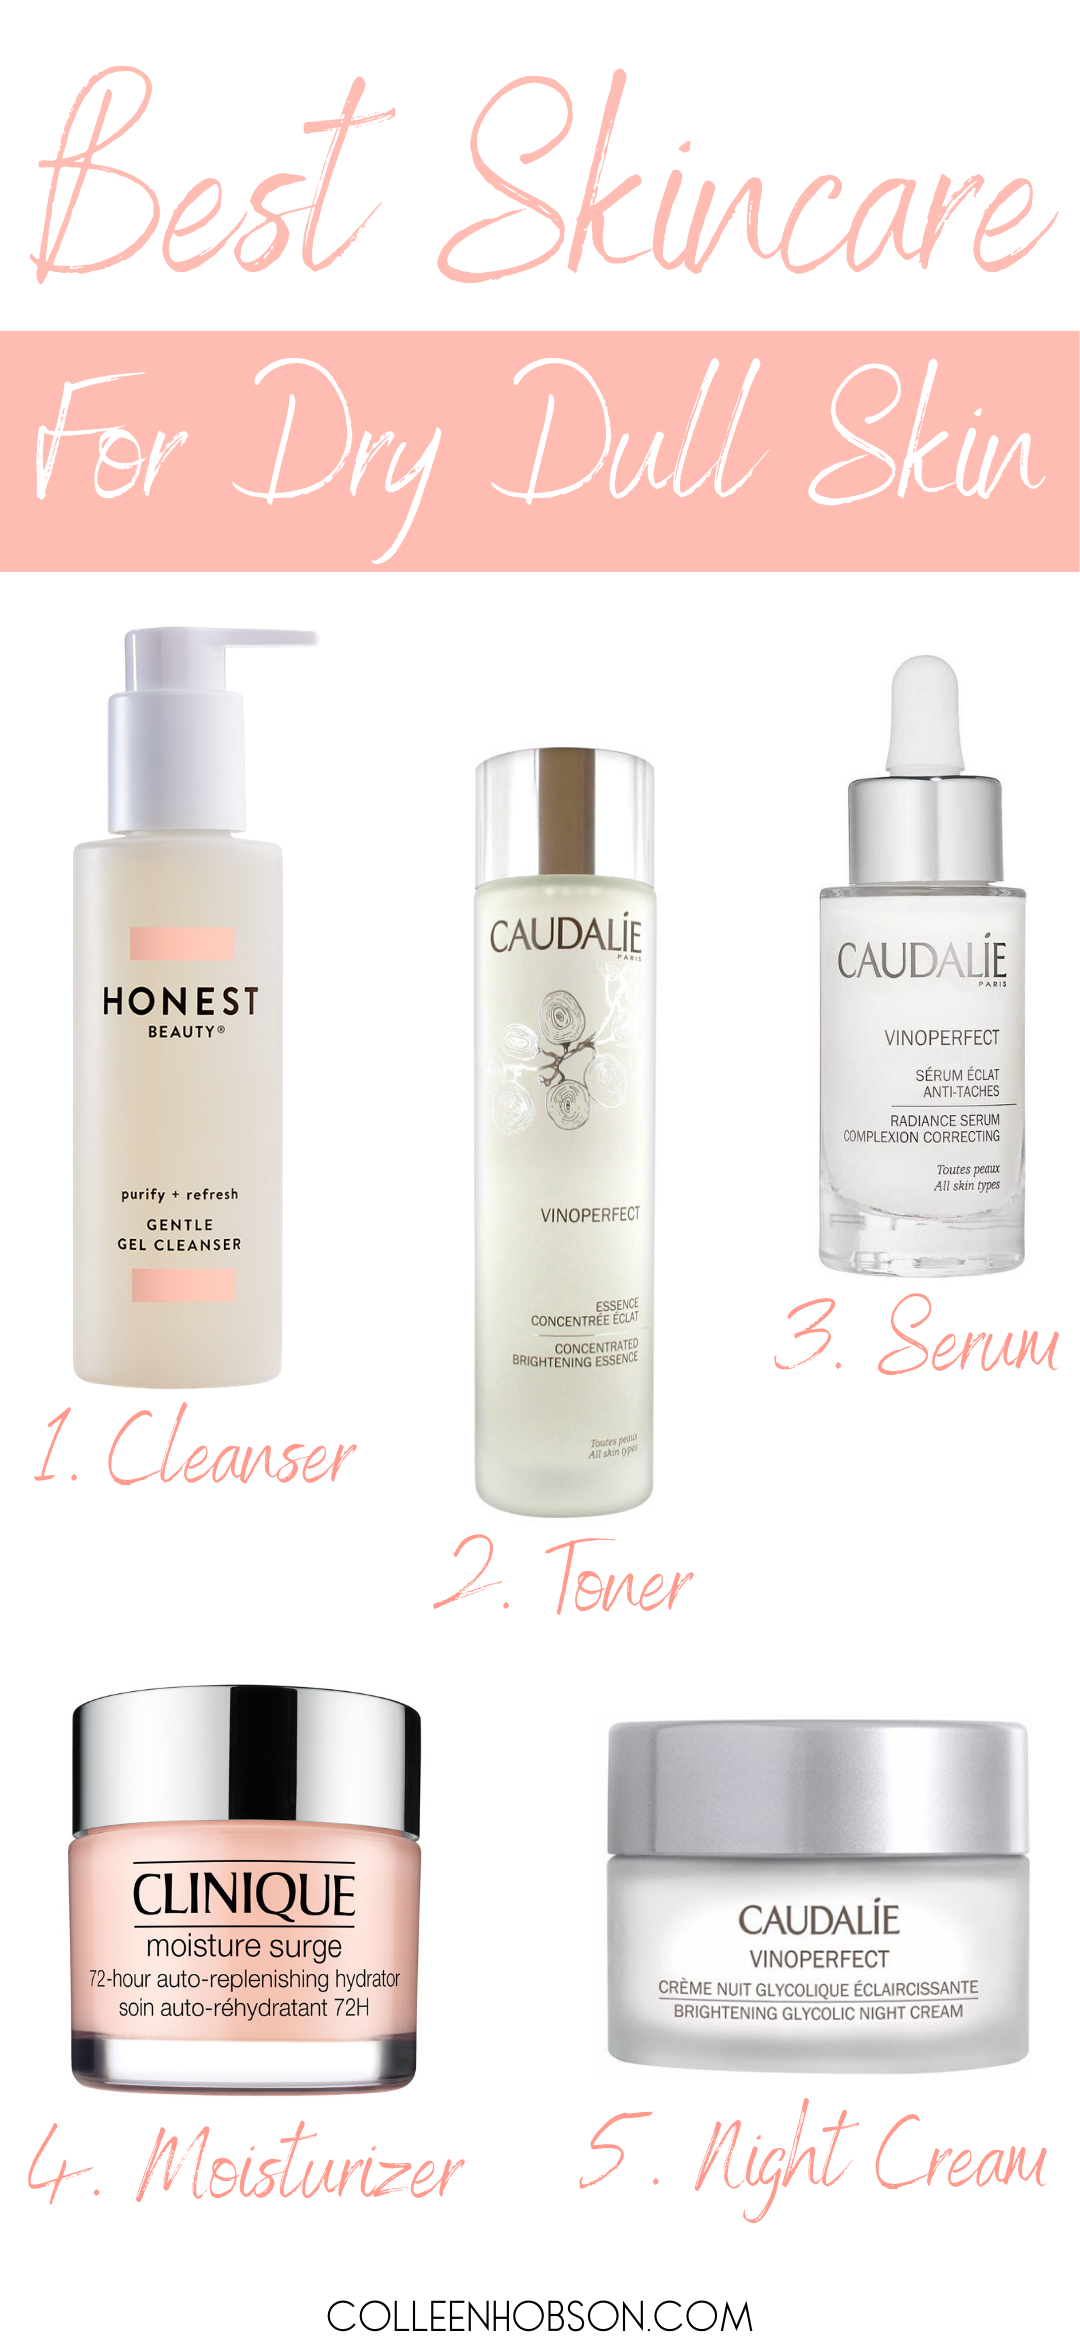 Best Skin Care Products For Dry Dull Skin In 2020 Dull Skin Skin Care Toner Products Skin Care